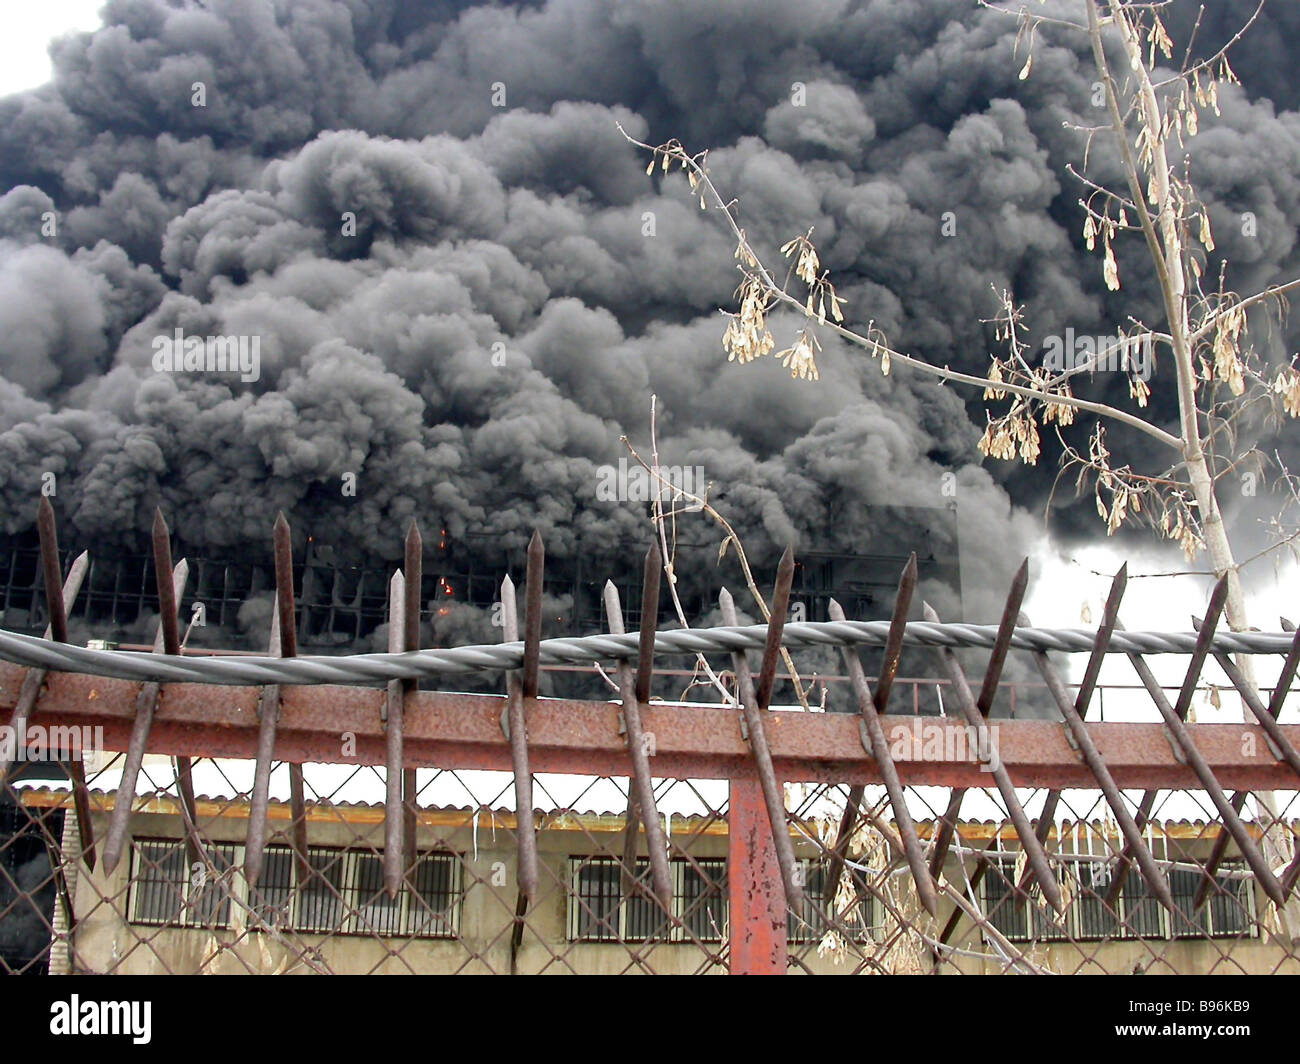 Polystyrole tile factory s four floors swept by fire in the Moscow suburban town of Lyubertsy Hot spot area about - Stock Image